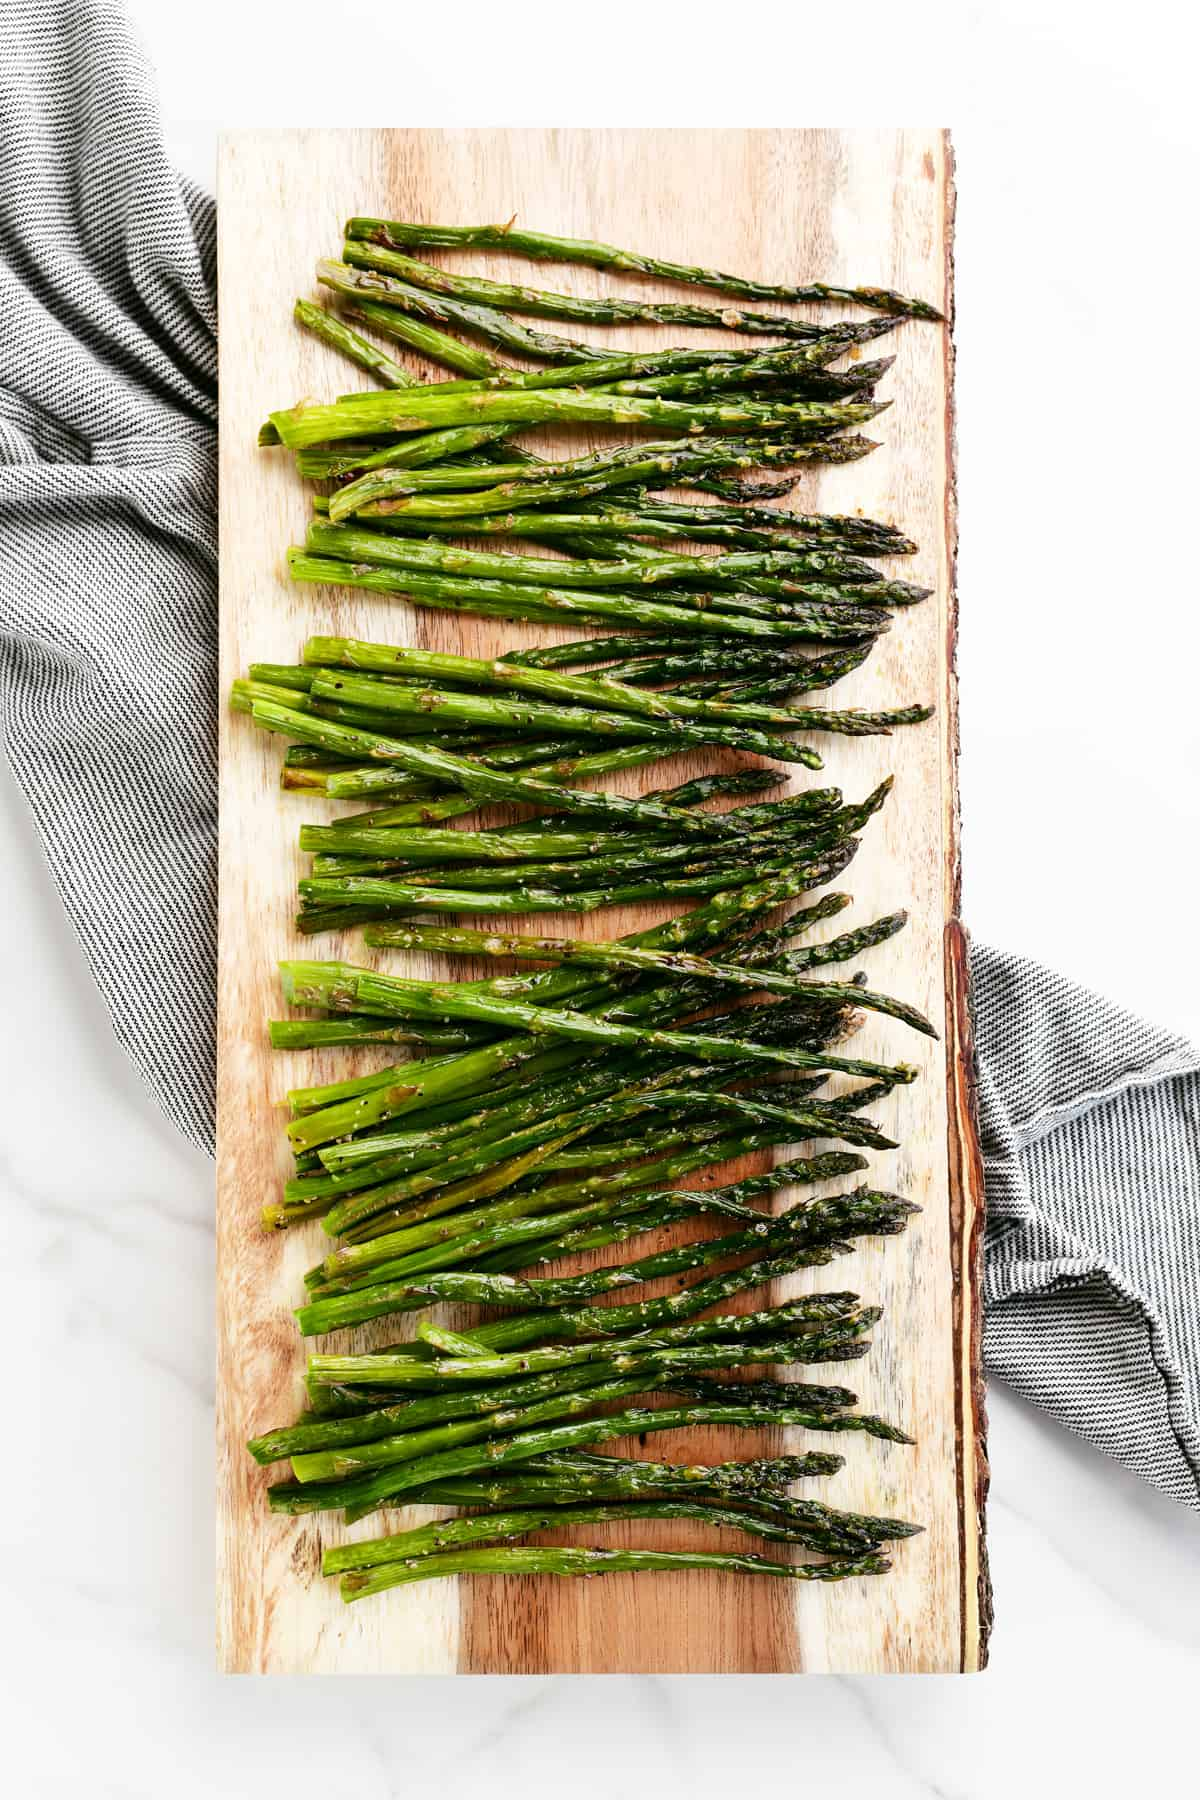 a wooden cutting board with roasted asparagus on it